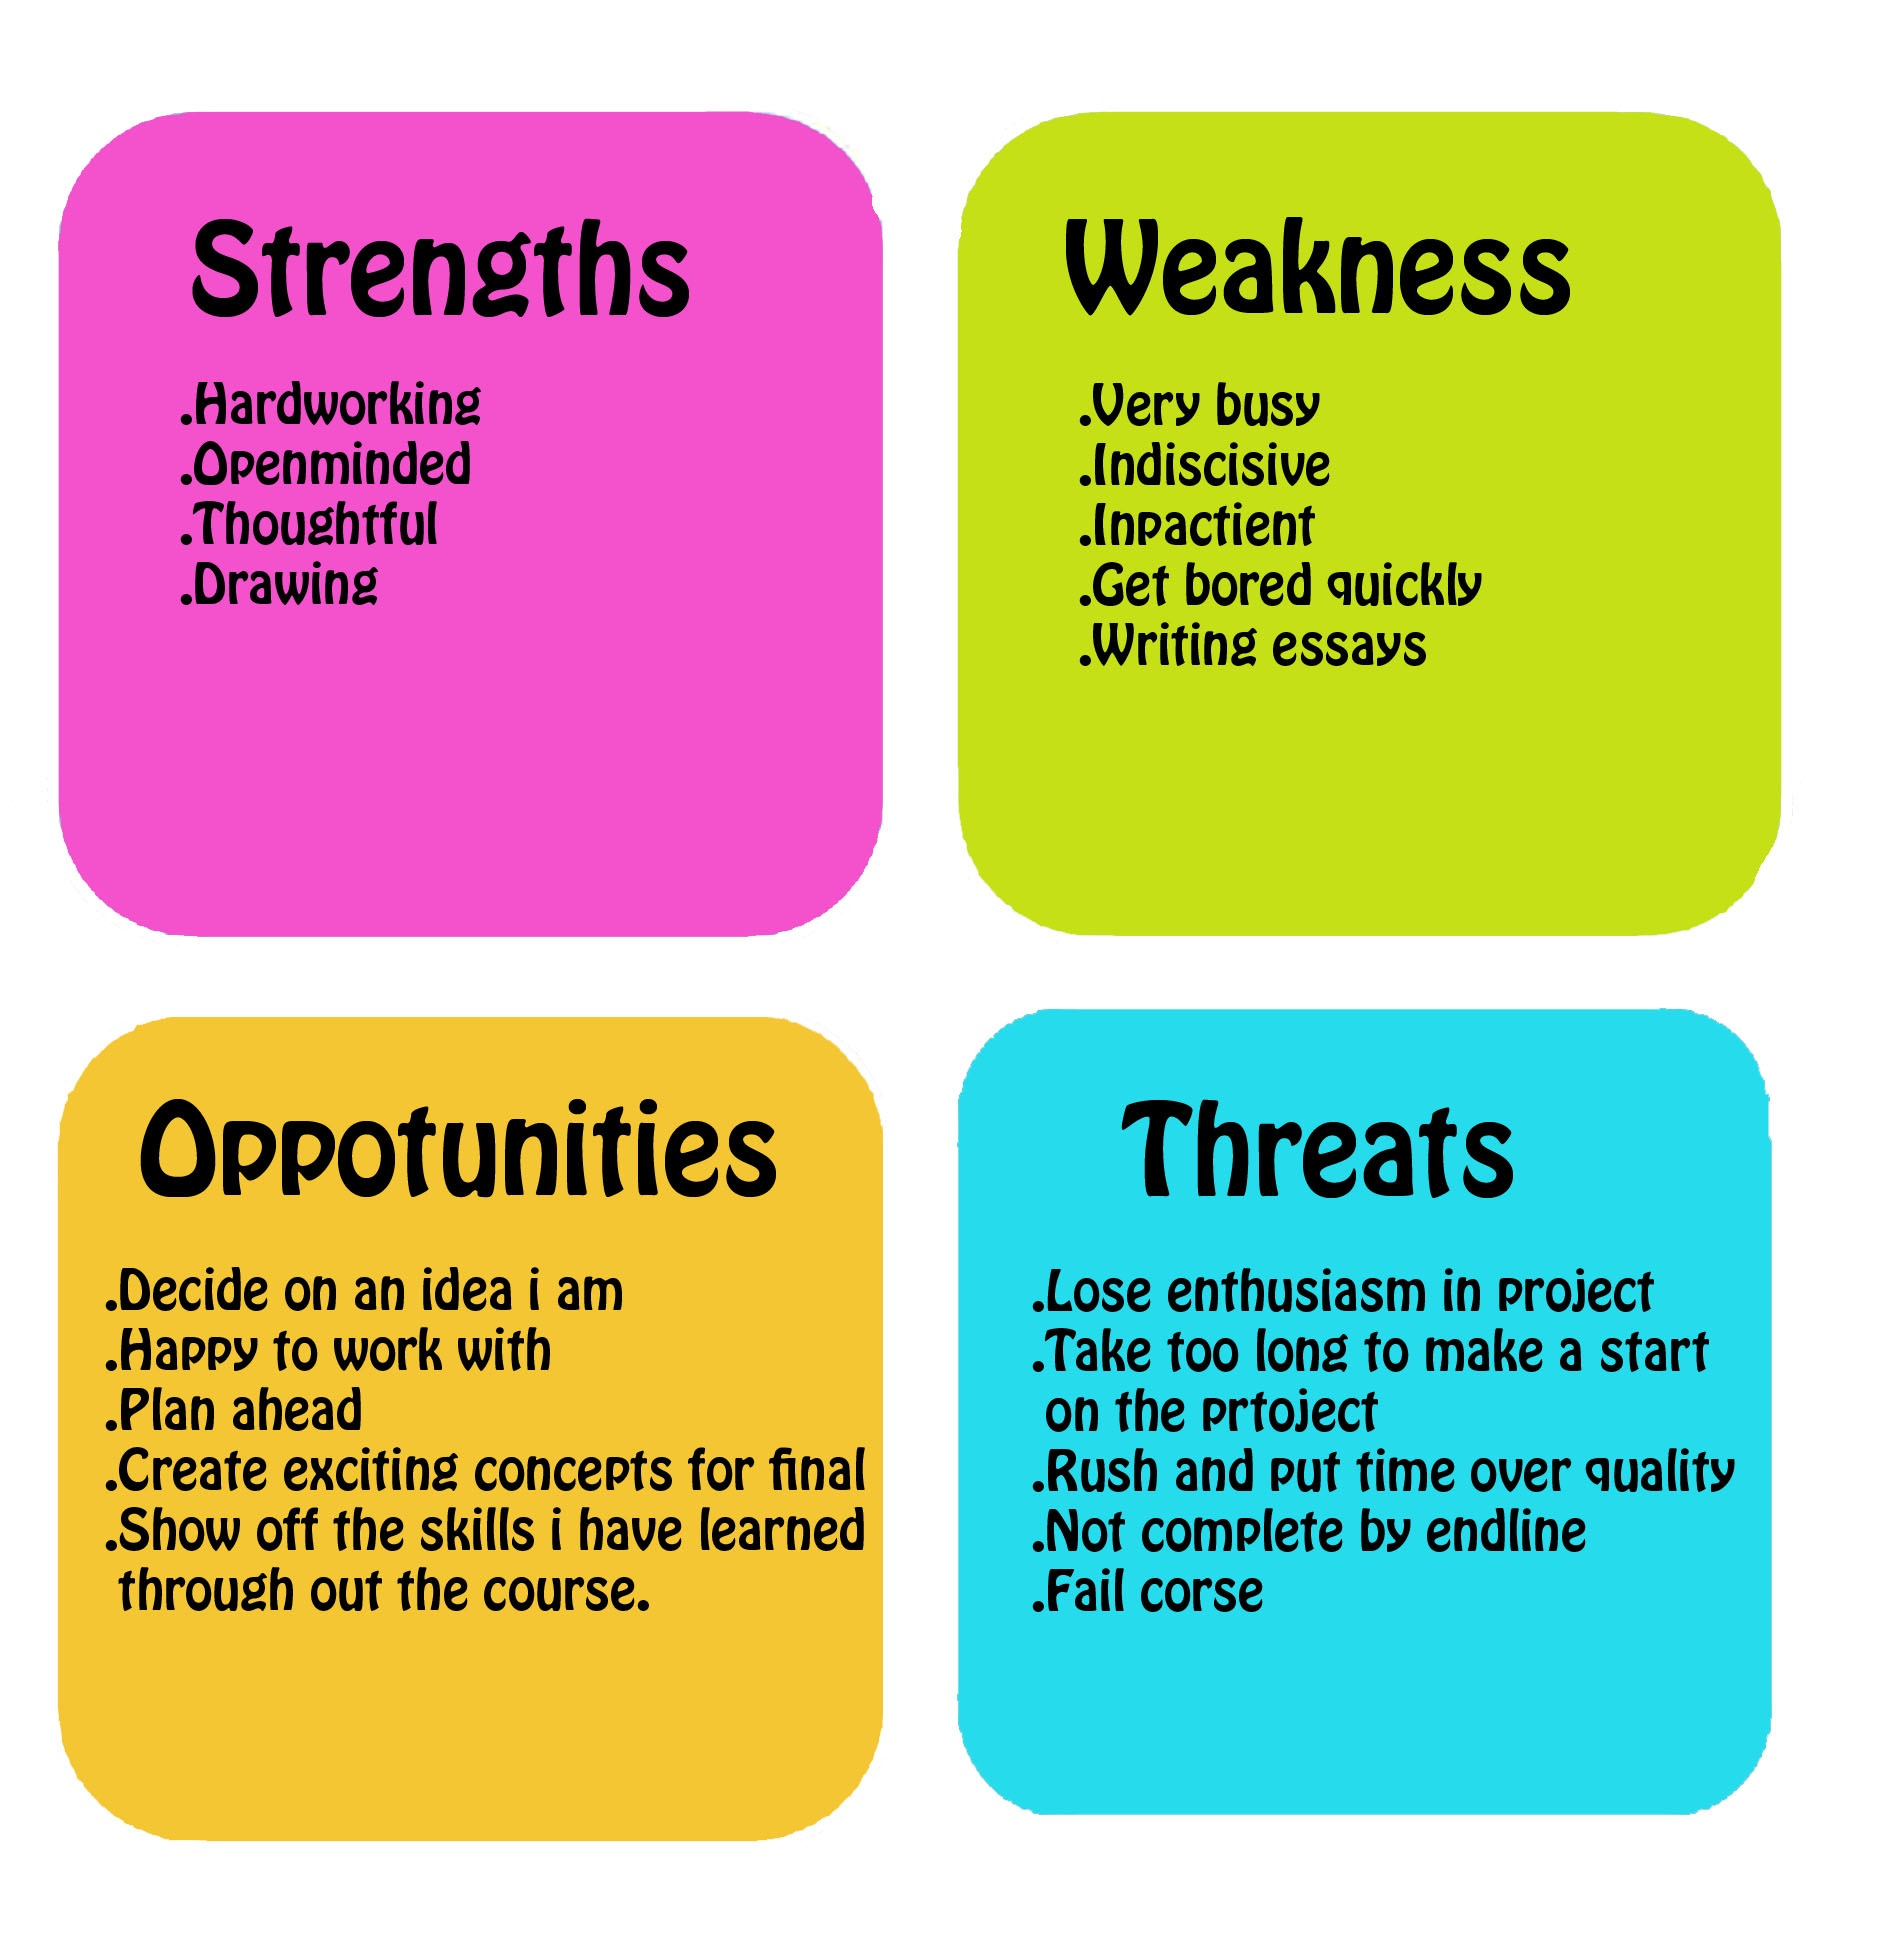 inki ltd swot analisys Here is detailed swot analysis of linkedin which is the growing professional network on internet linkedin is a social media company which has grown rapidly over the years and considered to be the best performers amongst other internet companies across the globe a swot analysis of linkedin is made to determine the.